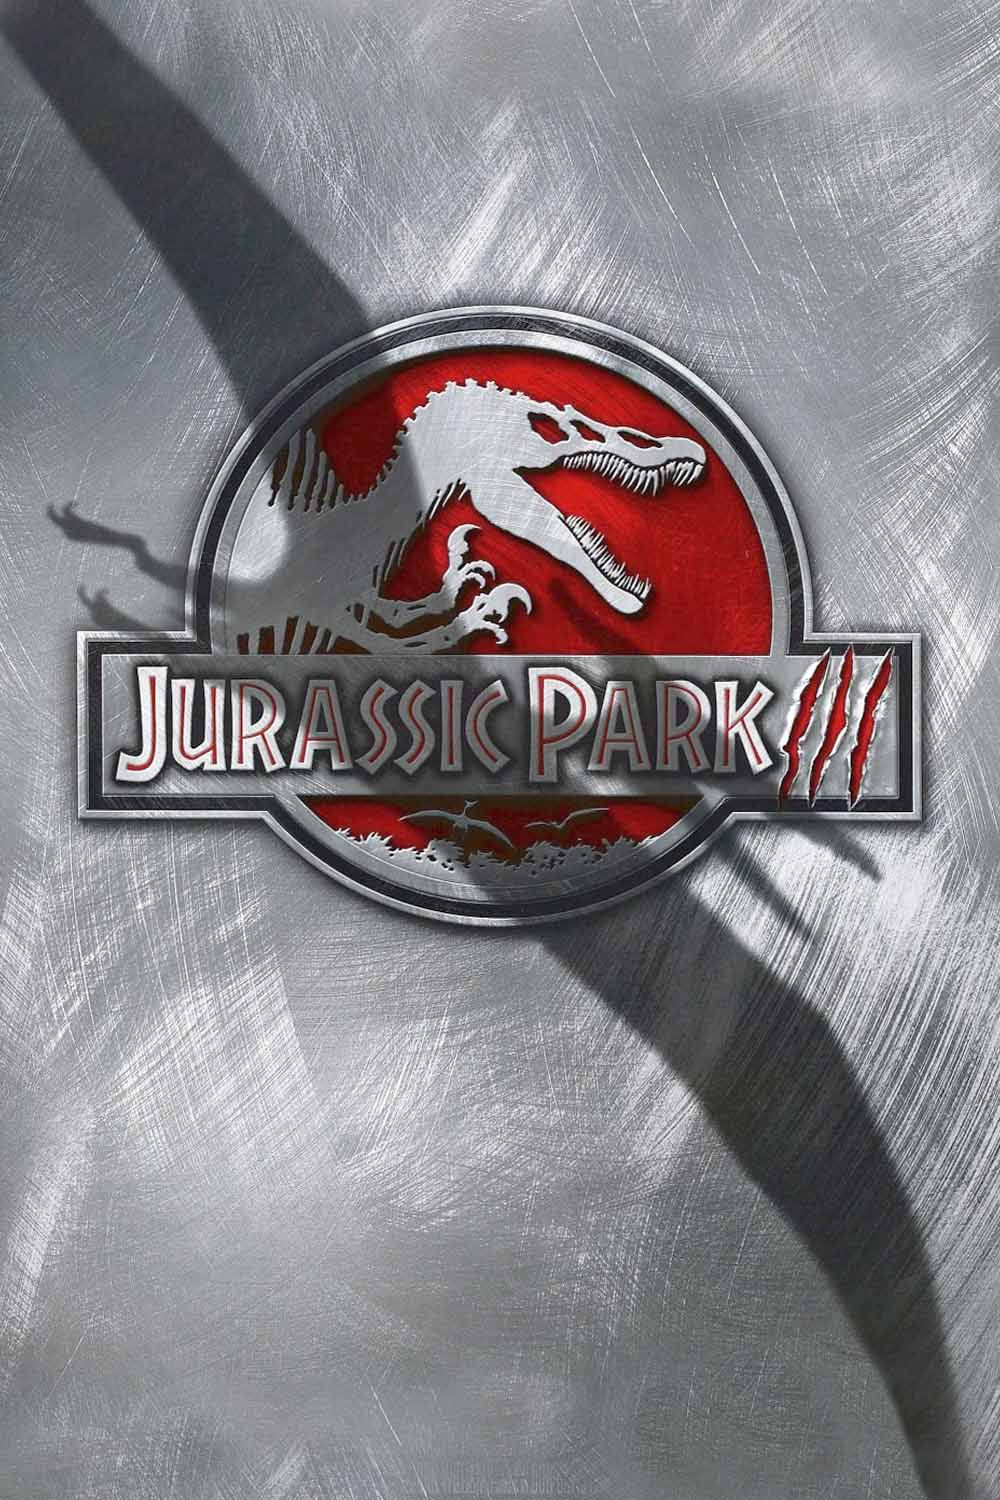 a review of the story of jurassic park Jurassic park: the game follows a pretty archetypal family doing very archetypal things the story plays it safe at the beginning, with the typical fractured daughter/father relationship that we .